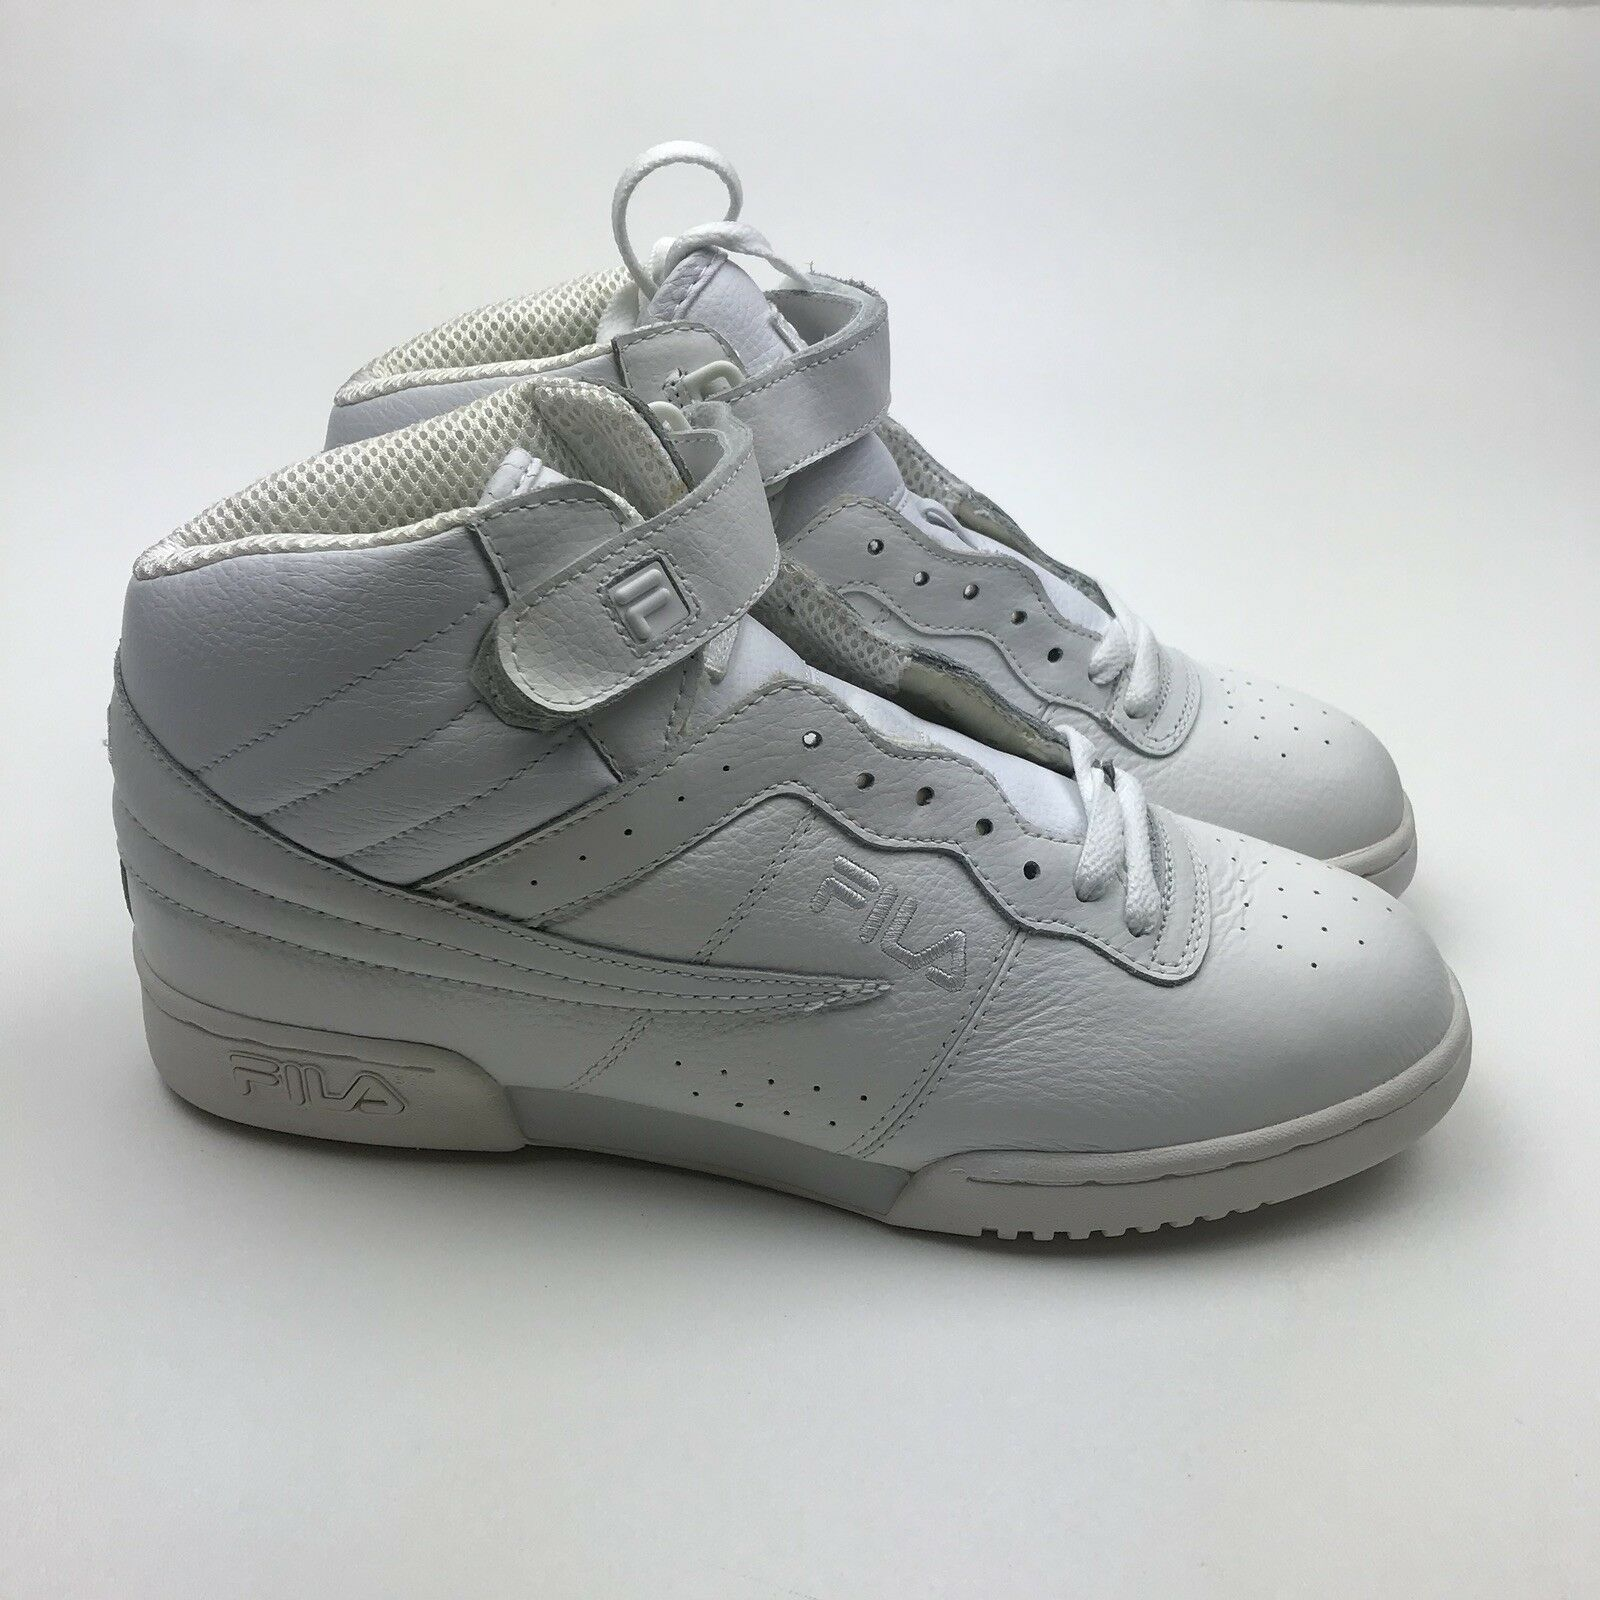 VINTAGE MEN'S FILA F13 F-13 ALL WHITE MID HIGH TOP BASKETBALL SHOE'S WHITE Wild casual shoes